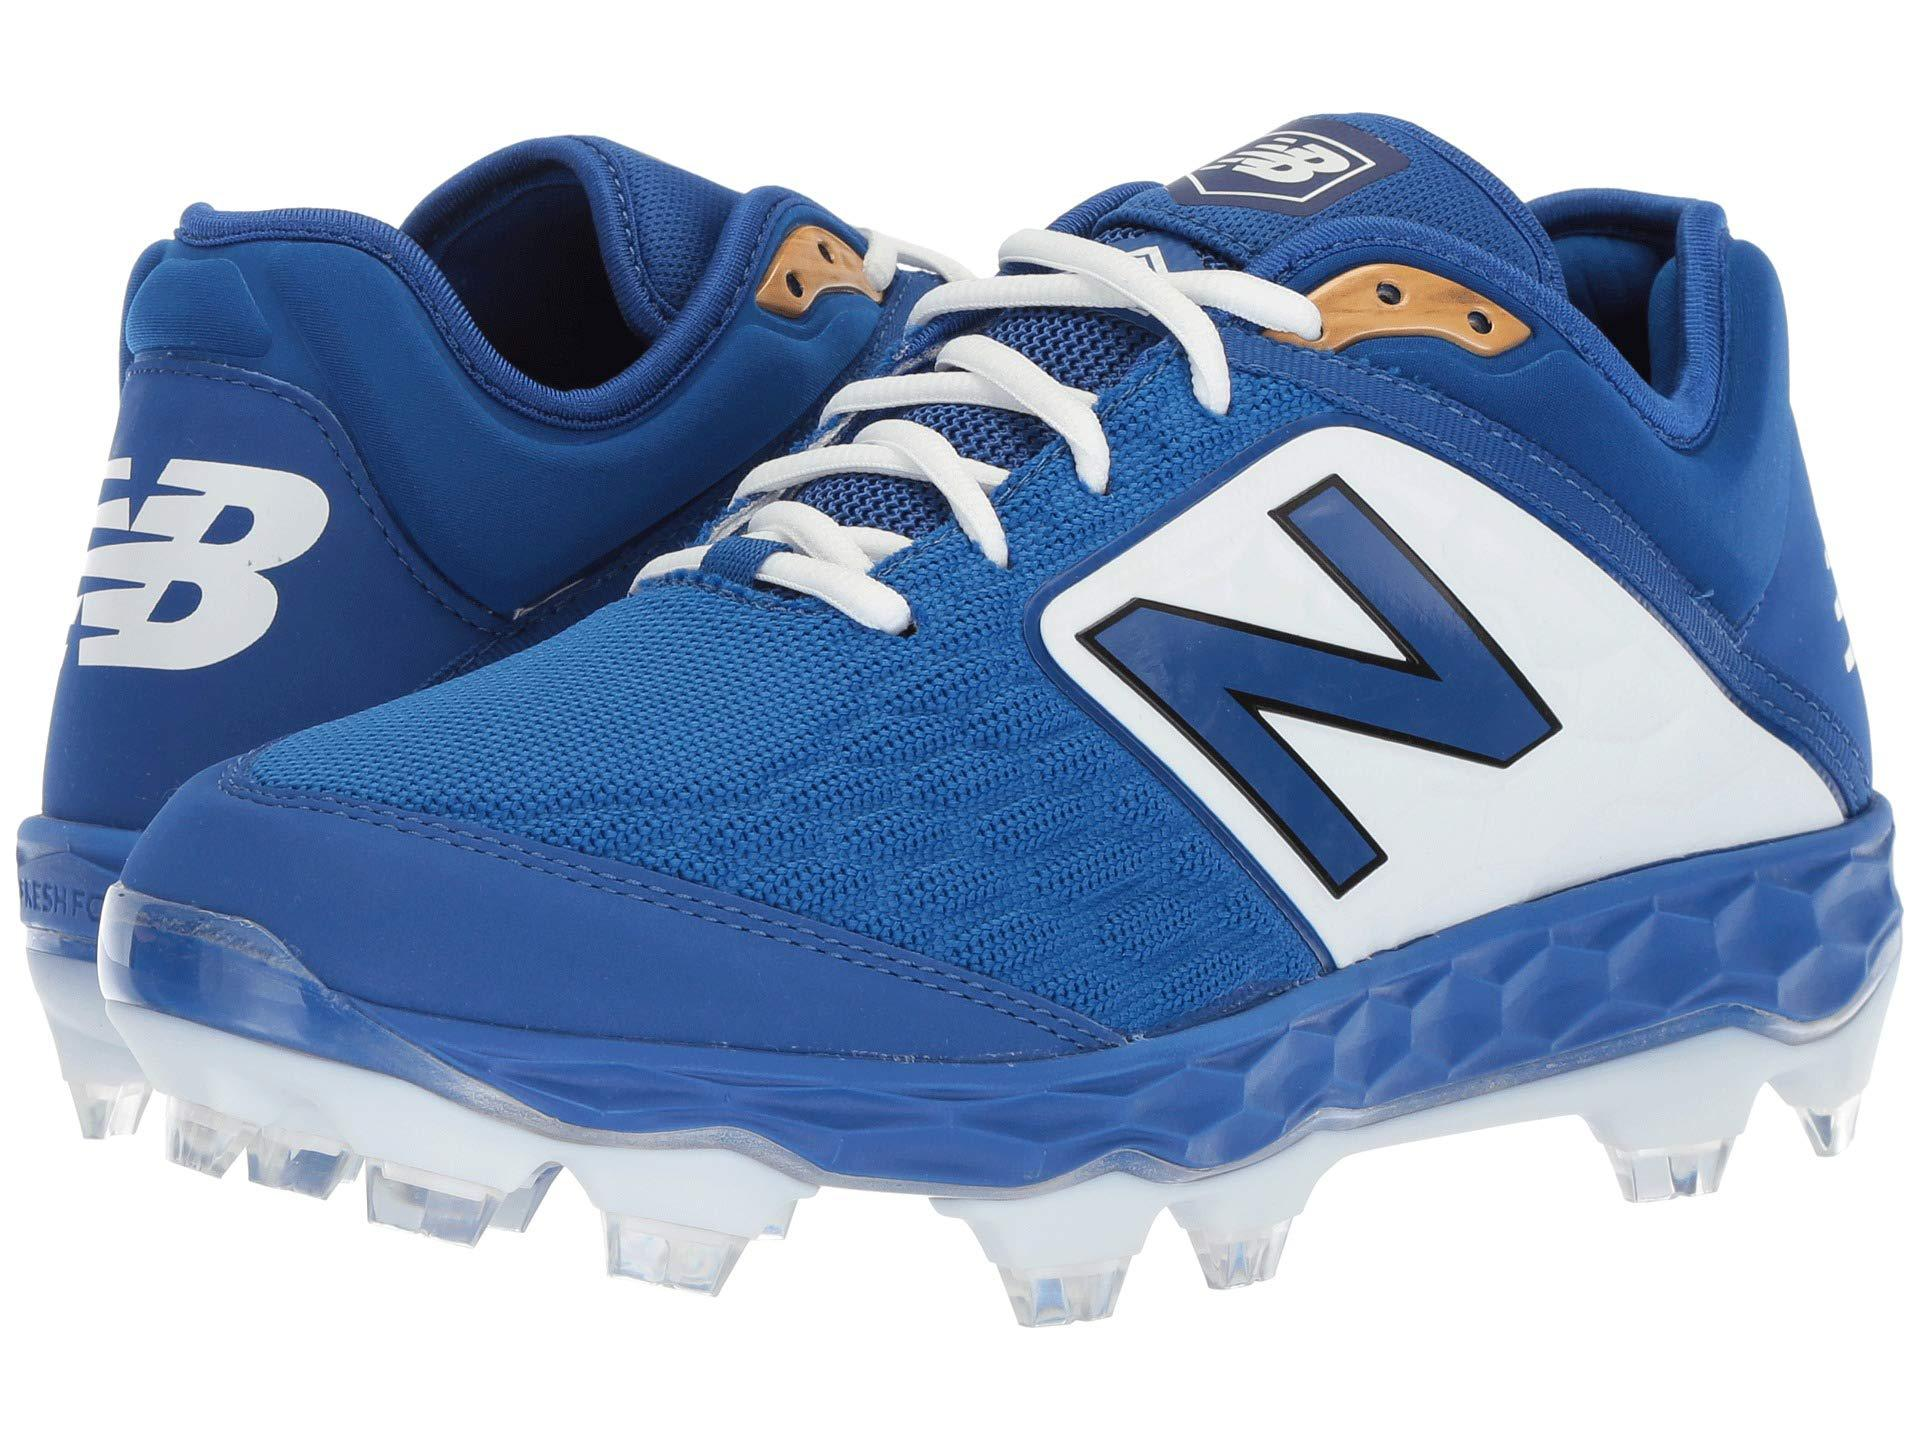 f4dbd5323c46 Lyst - New Balance Pl3000v4 (white/white) Men's Cleated Shoes in ...